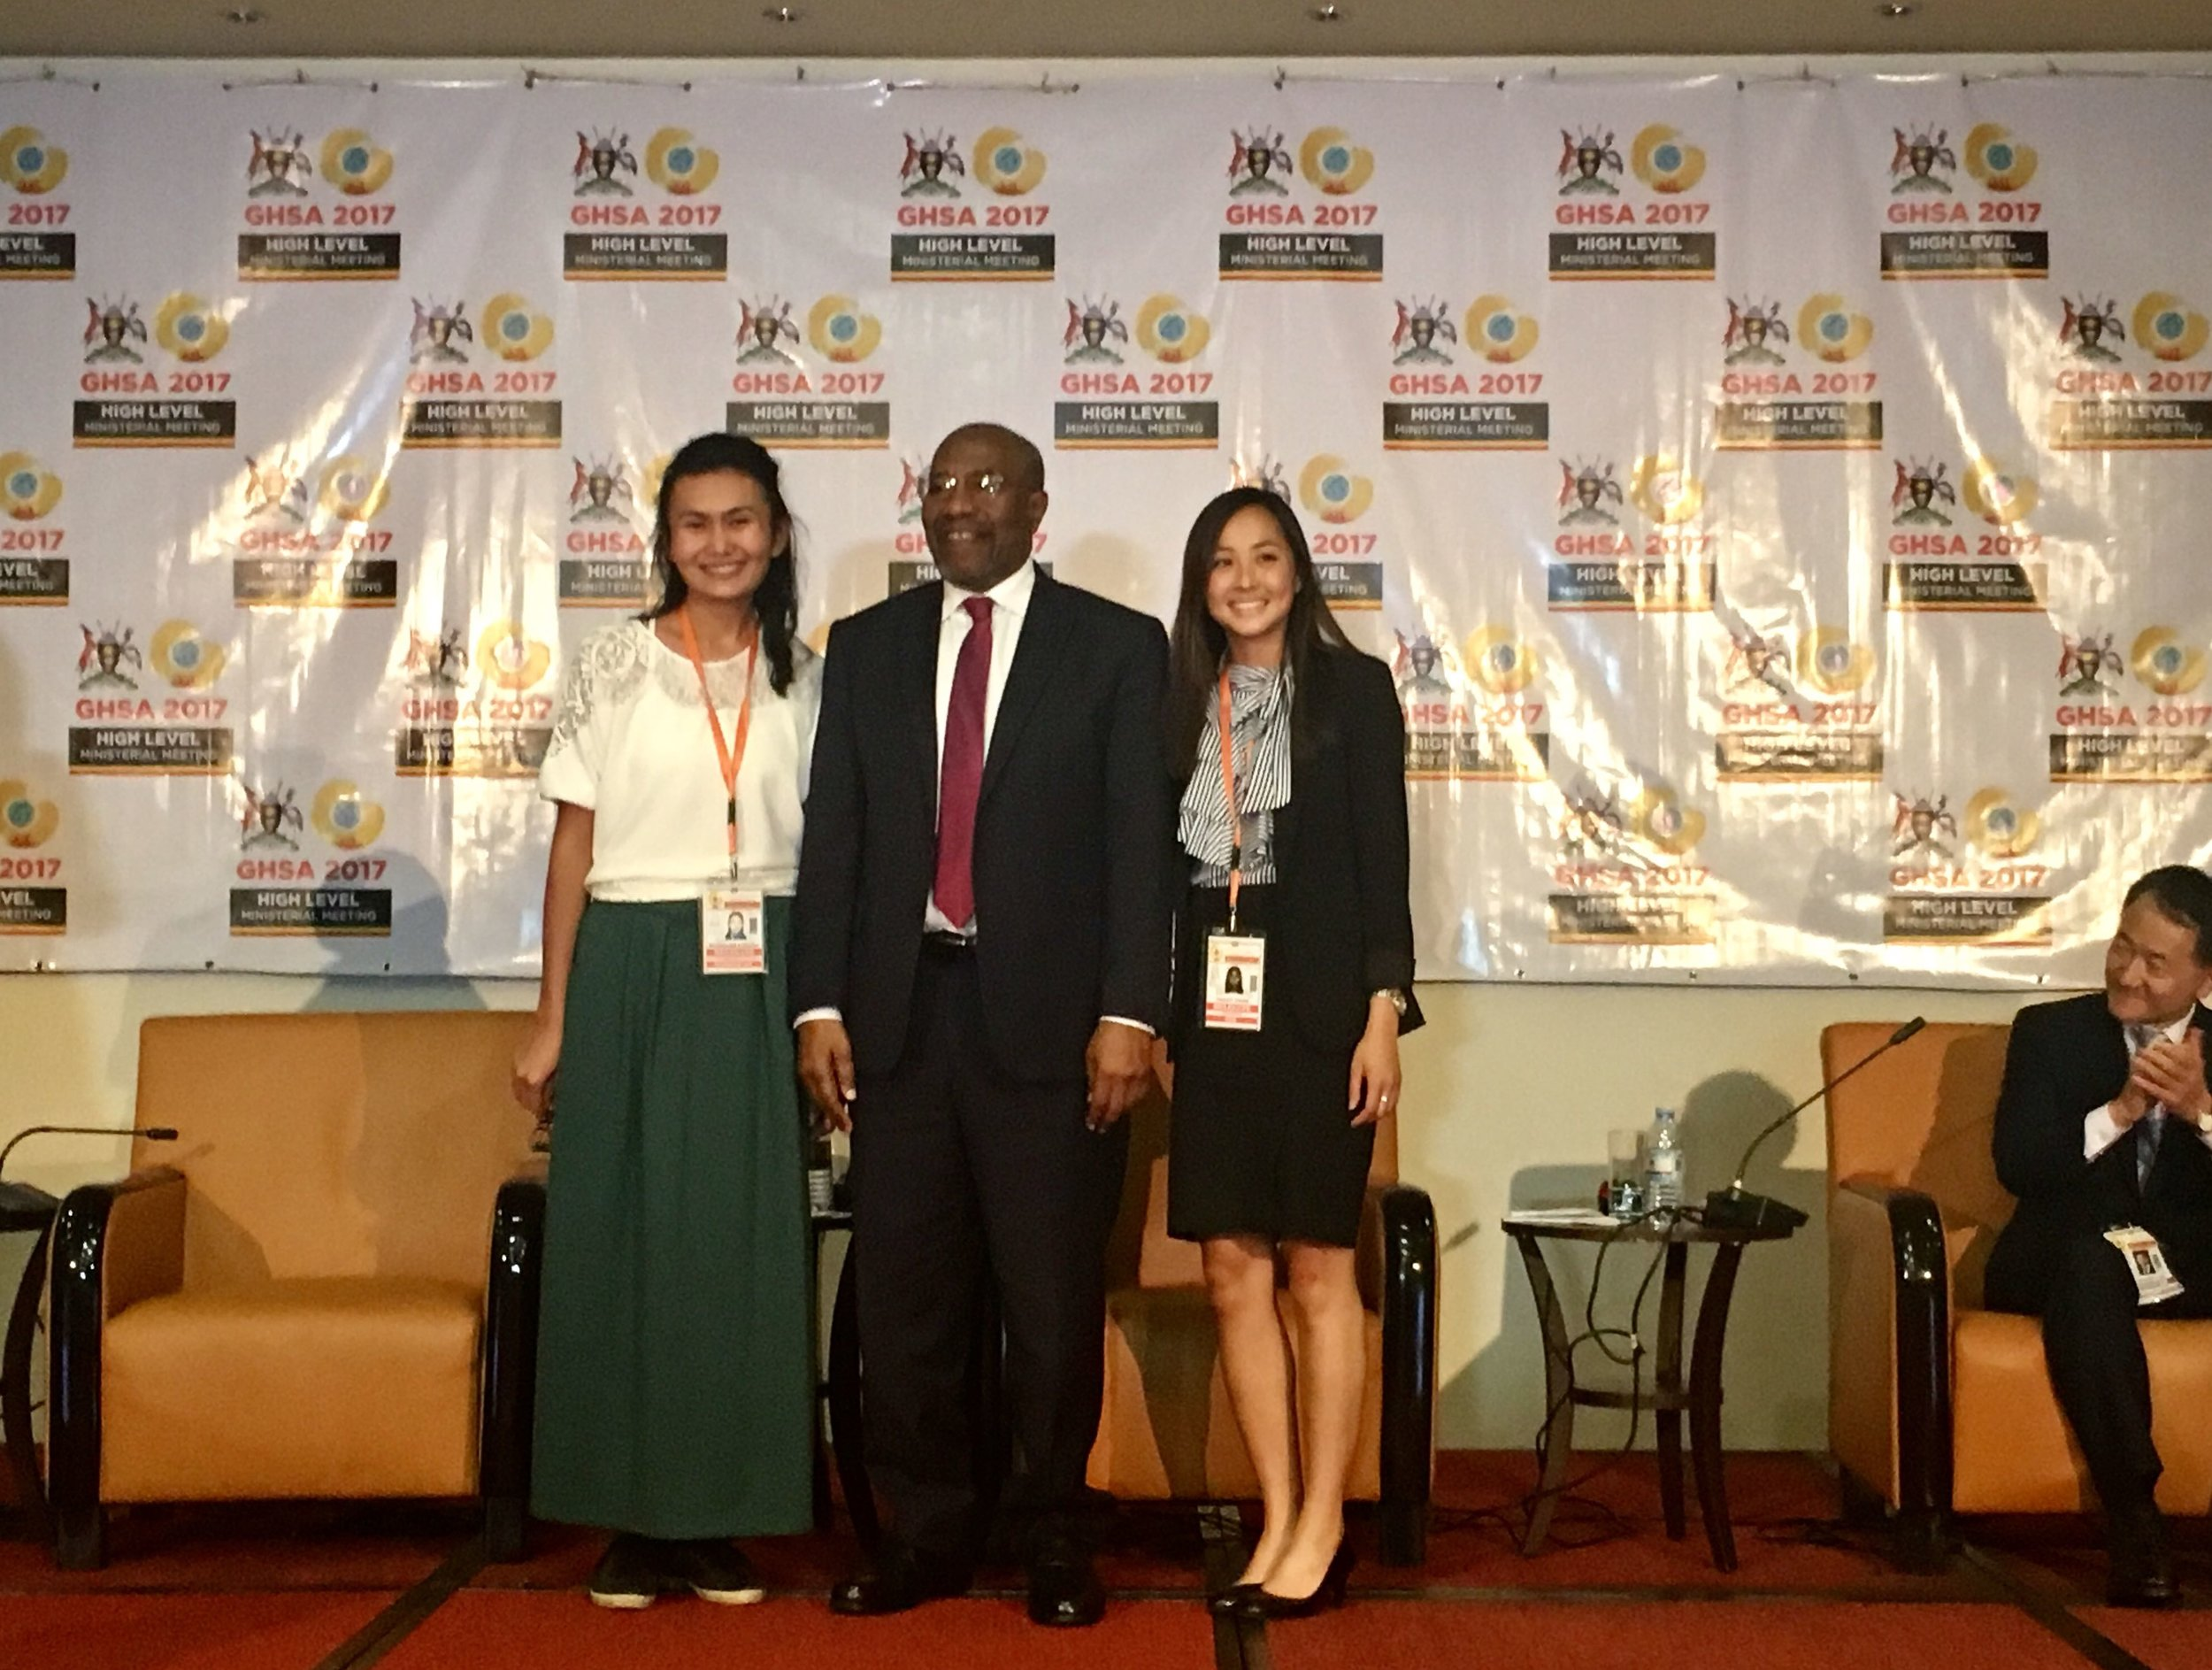 From left to right: Lyazzat Musralina (Institute of General Genetics and Cytology, Kazakhstan), Hon. Ruhakana Rugunda (Prime Minister, Uganda), Ashley Tseng (McGill University, Canada), and Hon. Park Neunghoo (Minister of Health & Welfare, Republic of Korea). The Prime Minister of Uganda had just announced Ashley and Lyazzat as the winners of Nuclear Threat Initiative's Next Generation for Biosecurity in GHSA Competition.